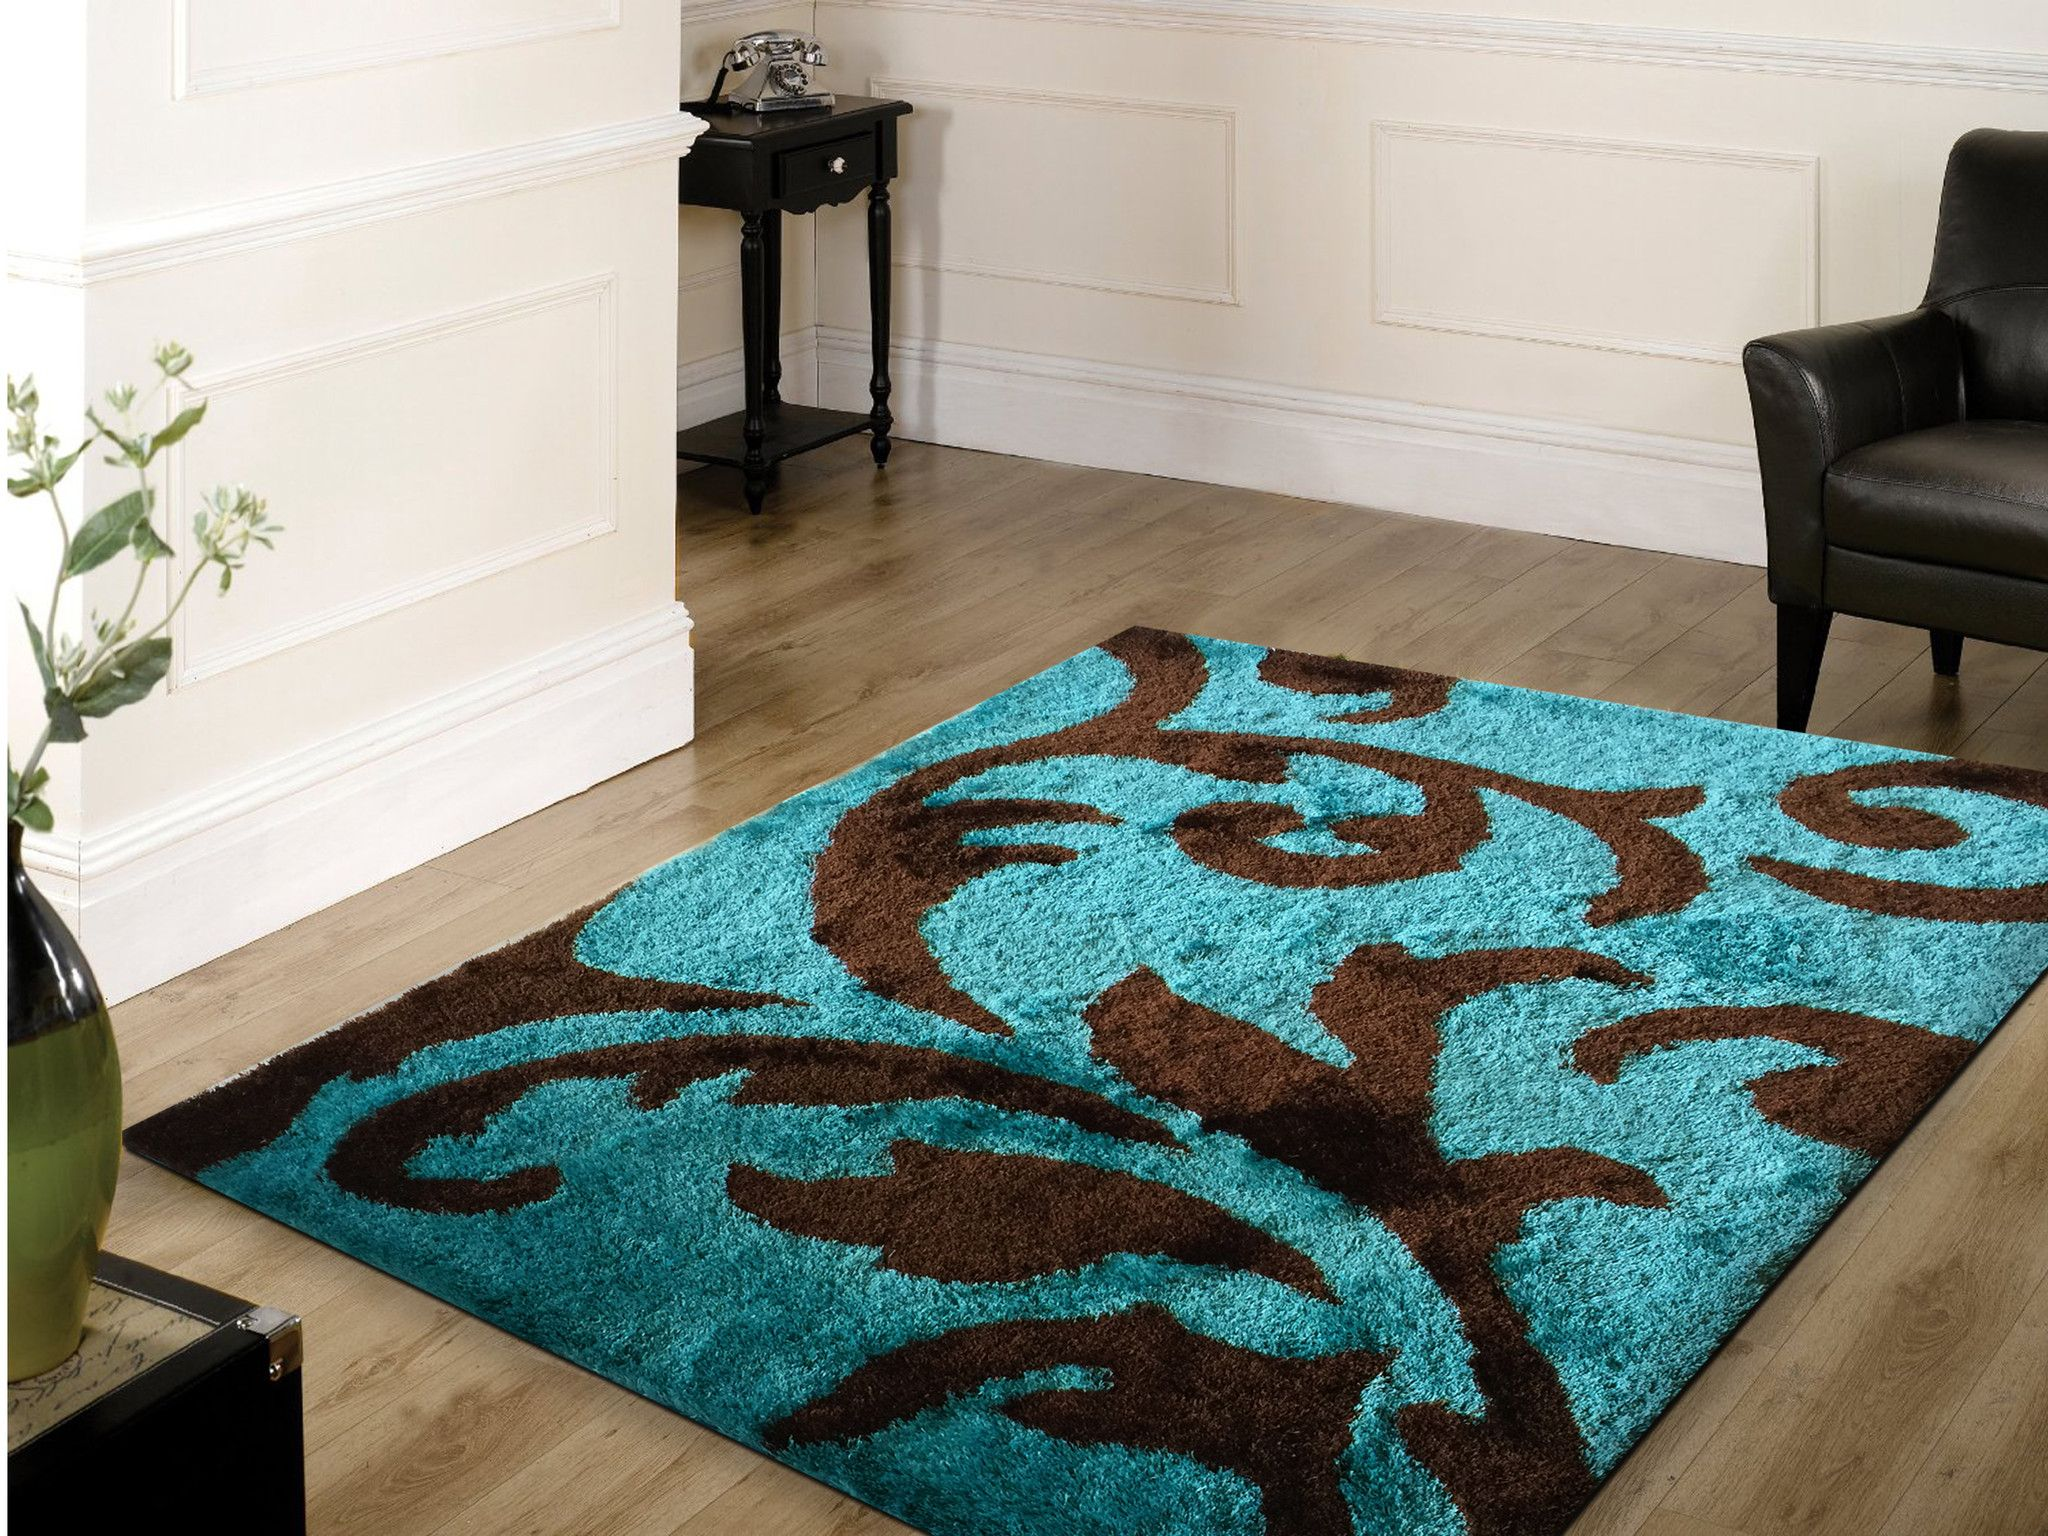 turquoise kitchen rugs base cabinet organizers soft indoor bedroom shag area rug brown with